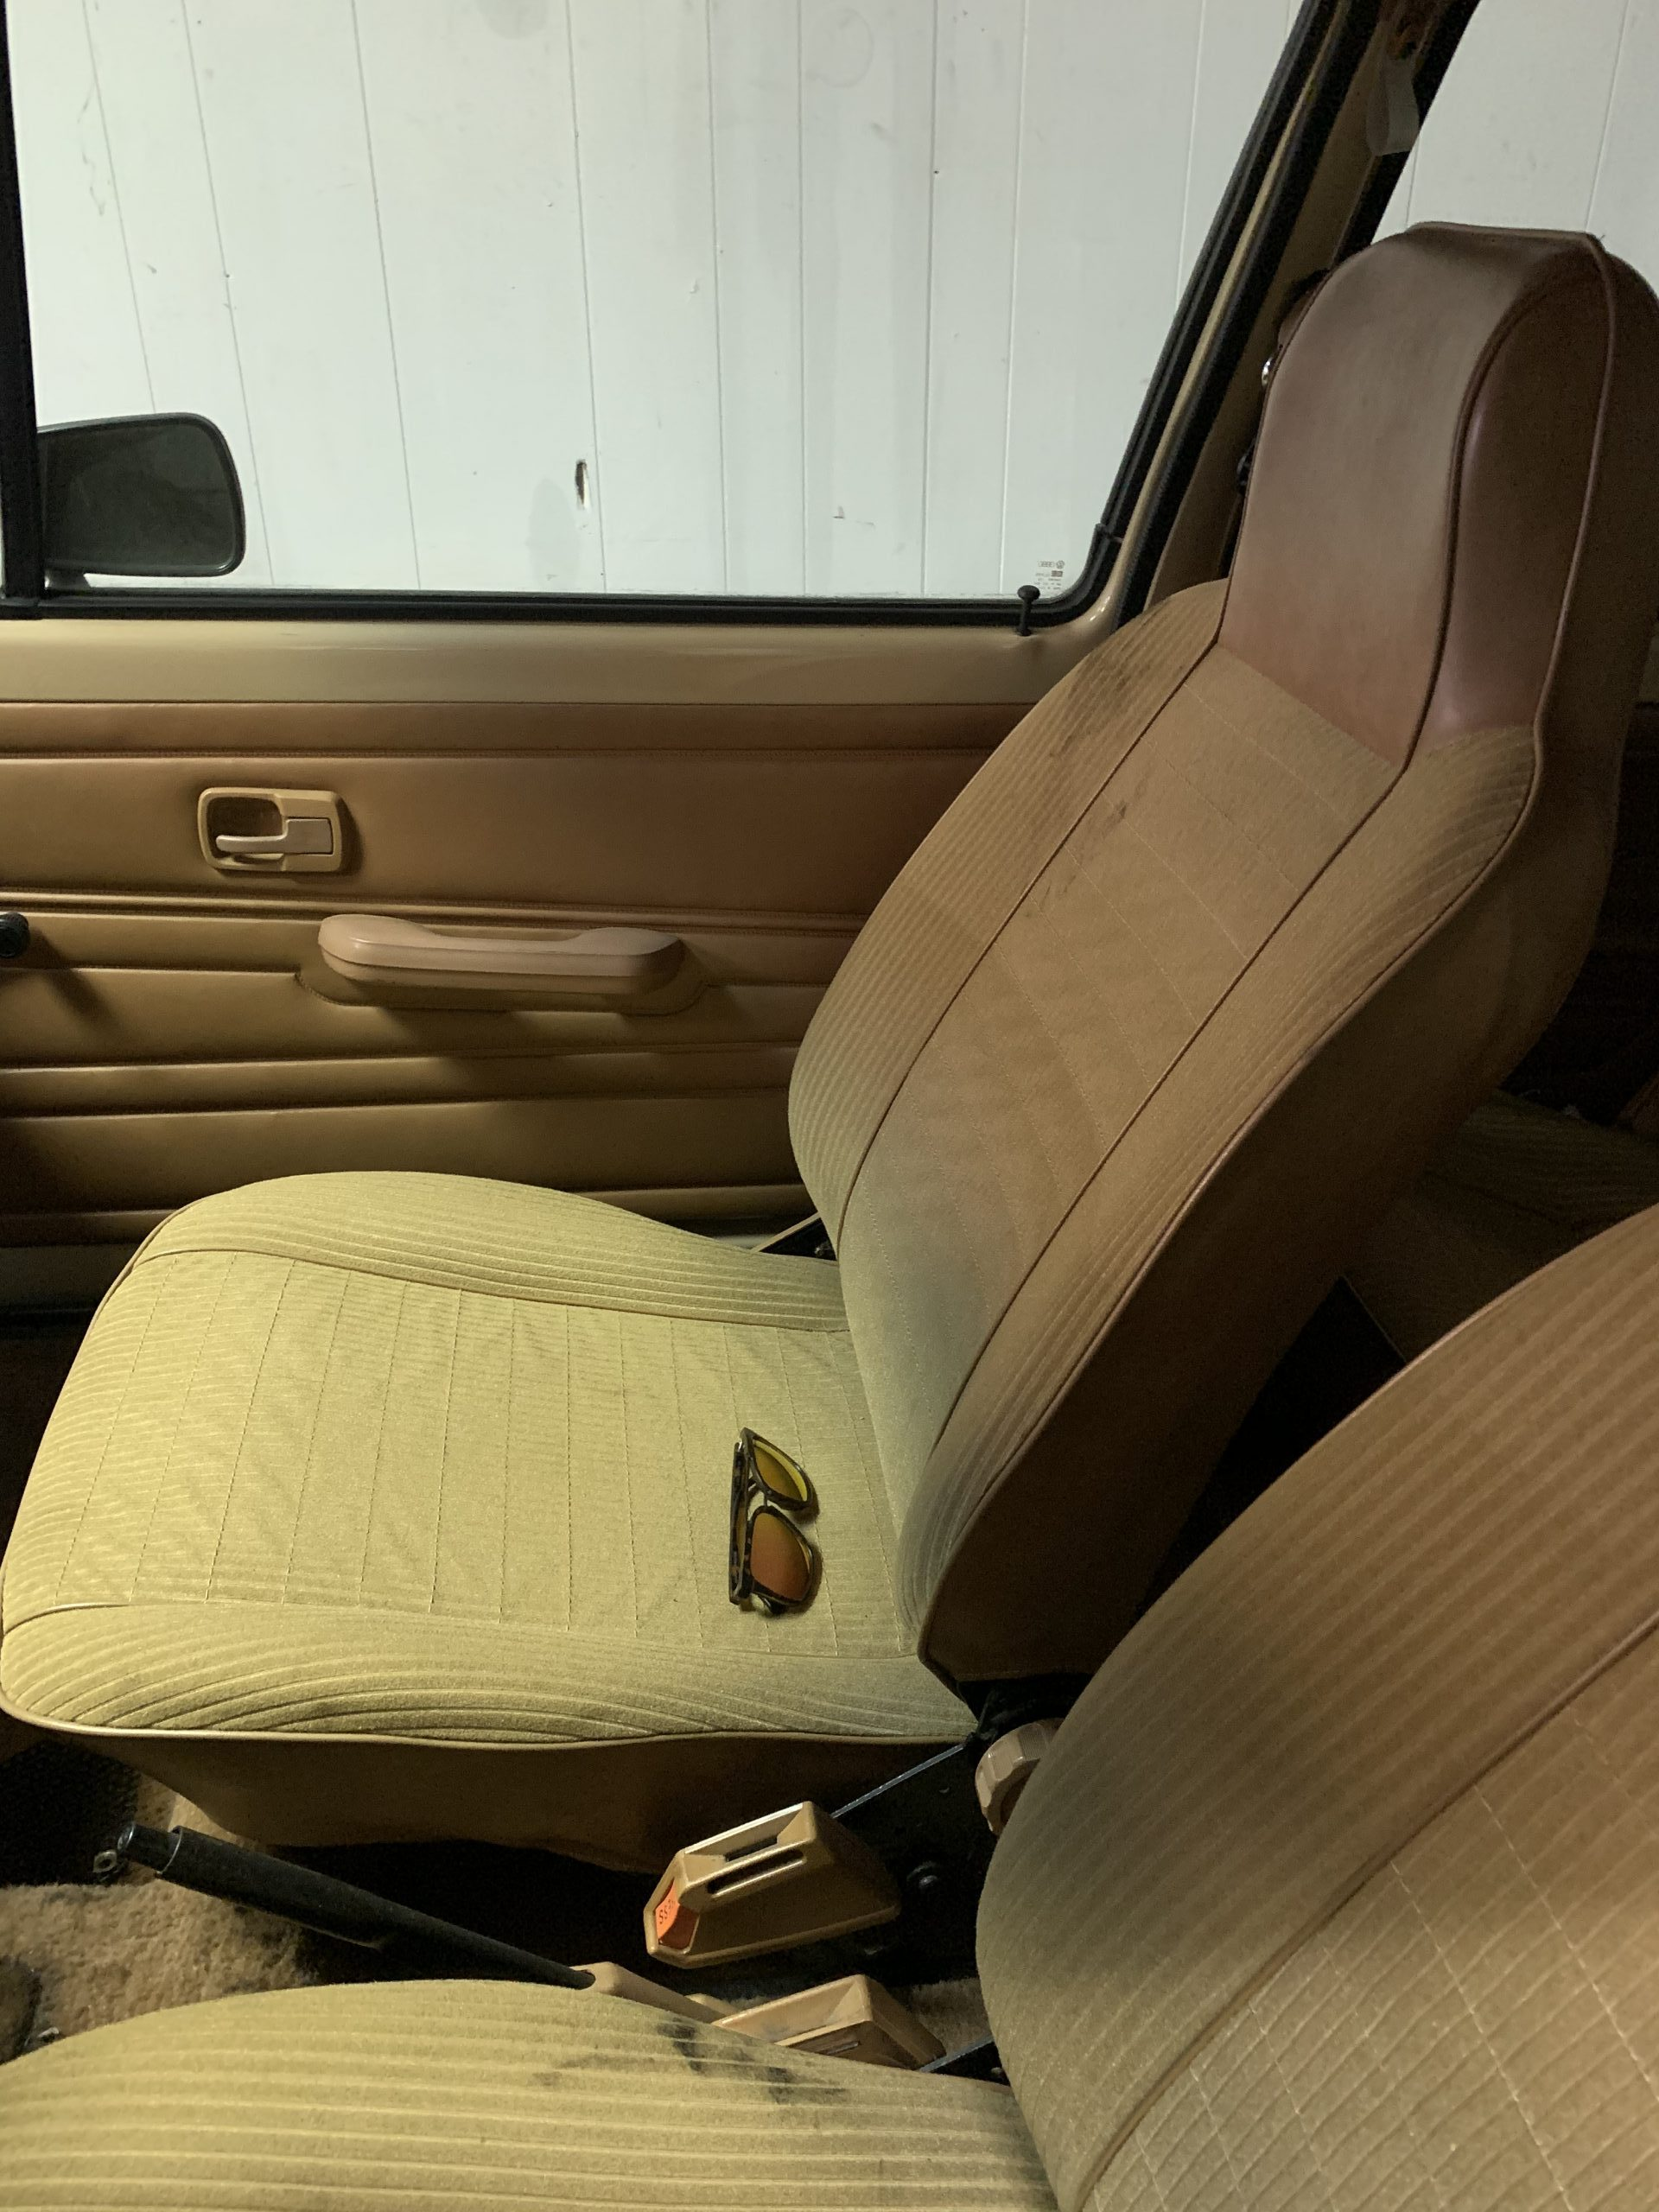 1980 VW Rabbit TDI swap seats before Aug 15, 3 42 08 PM